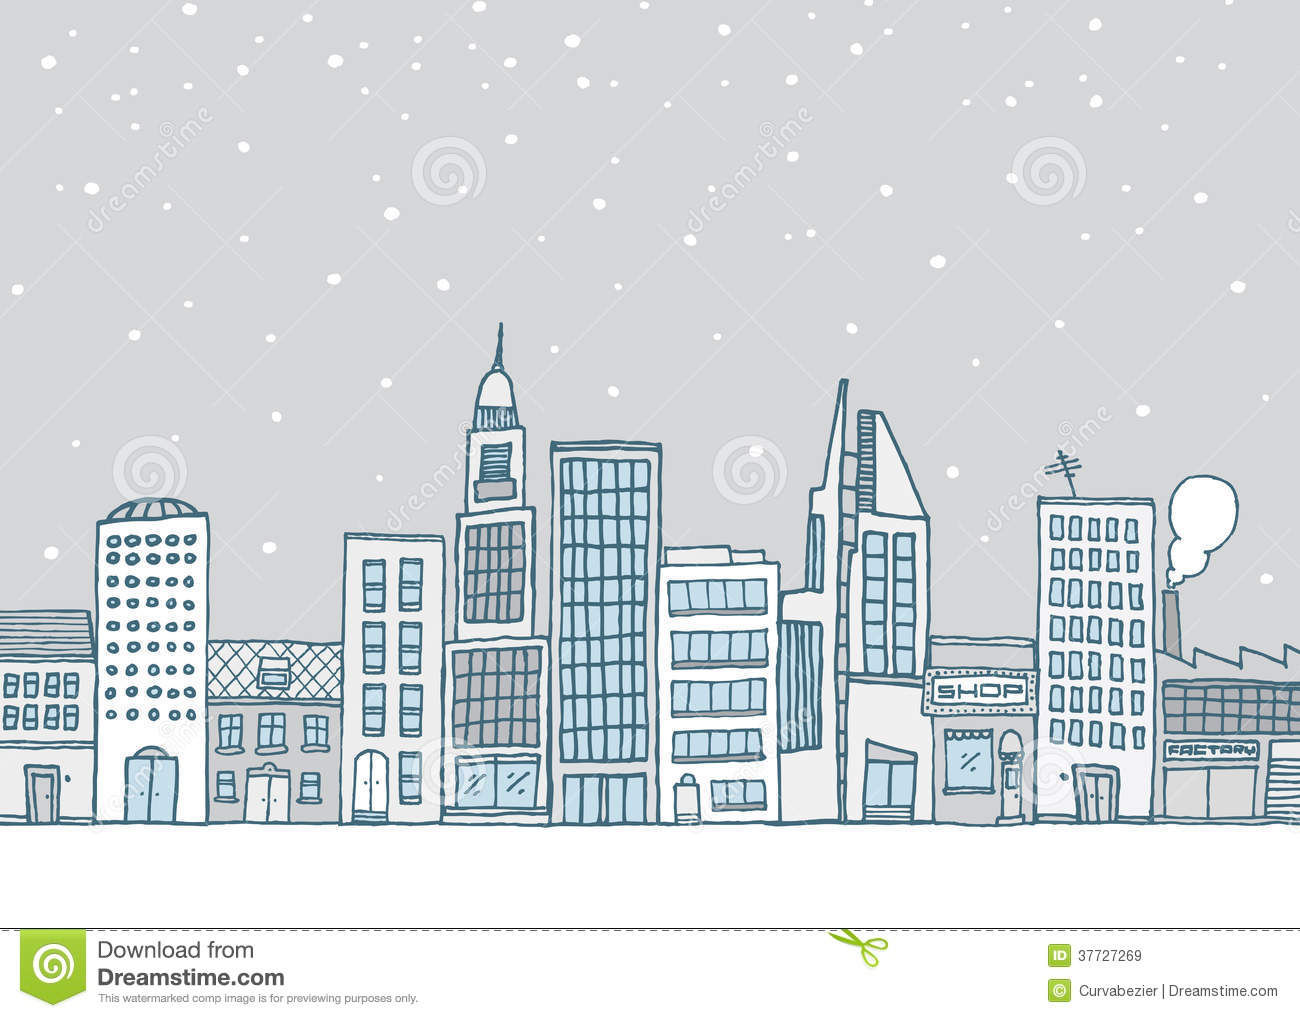 White Urban Landscape In Snowy Weather Royalty Free Stock Images.